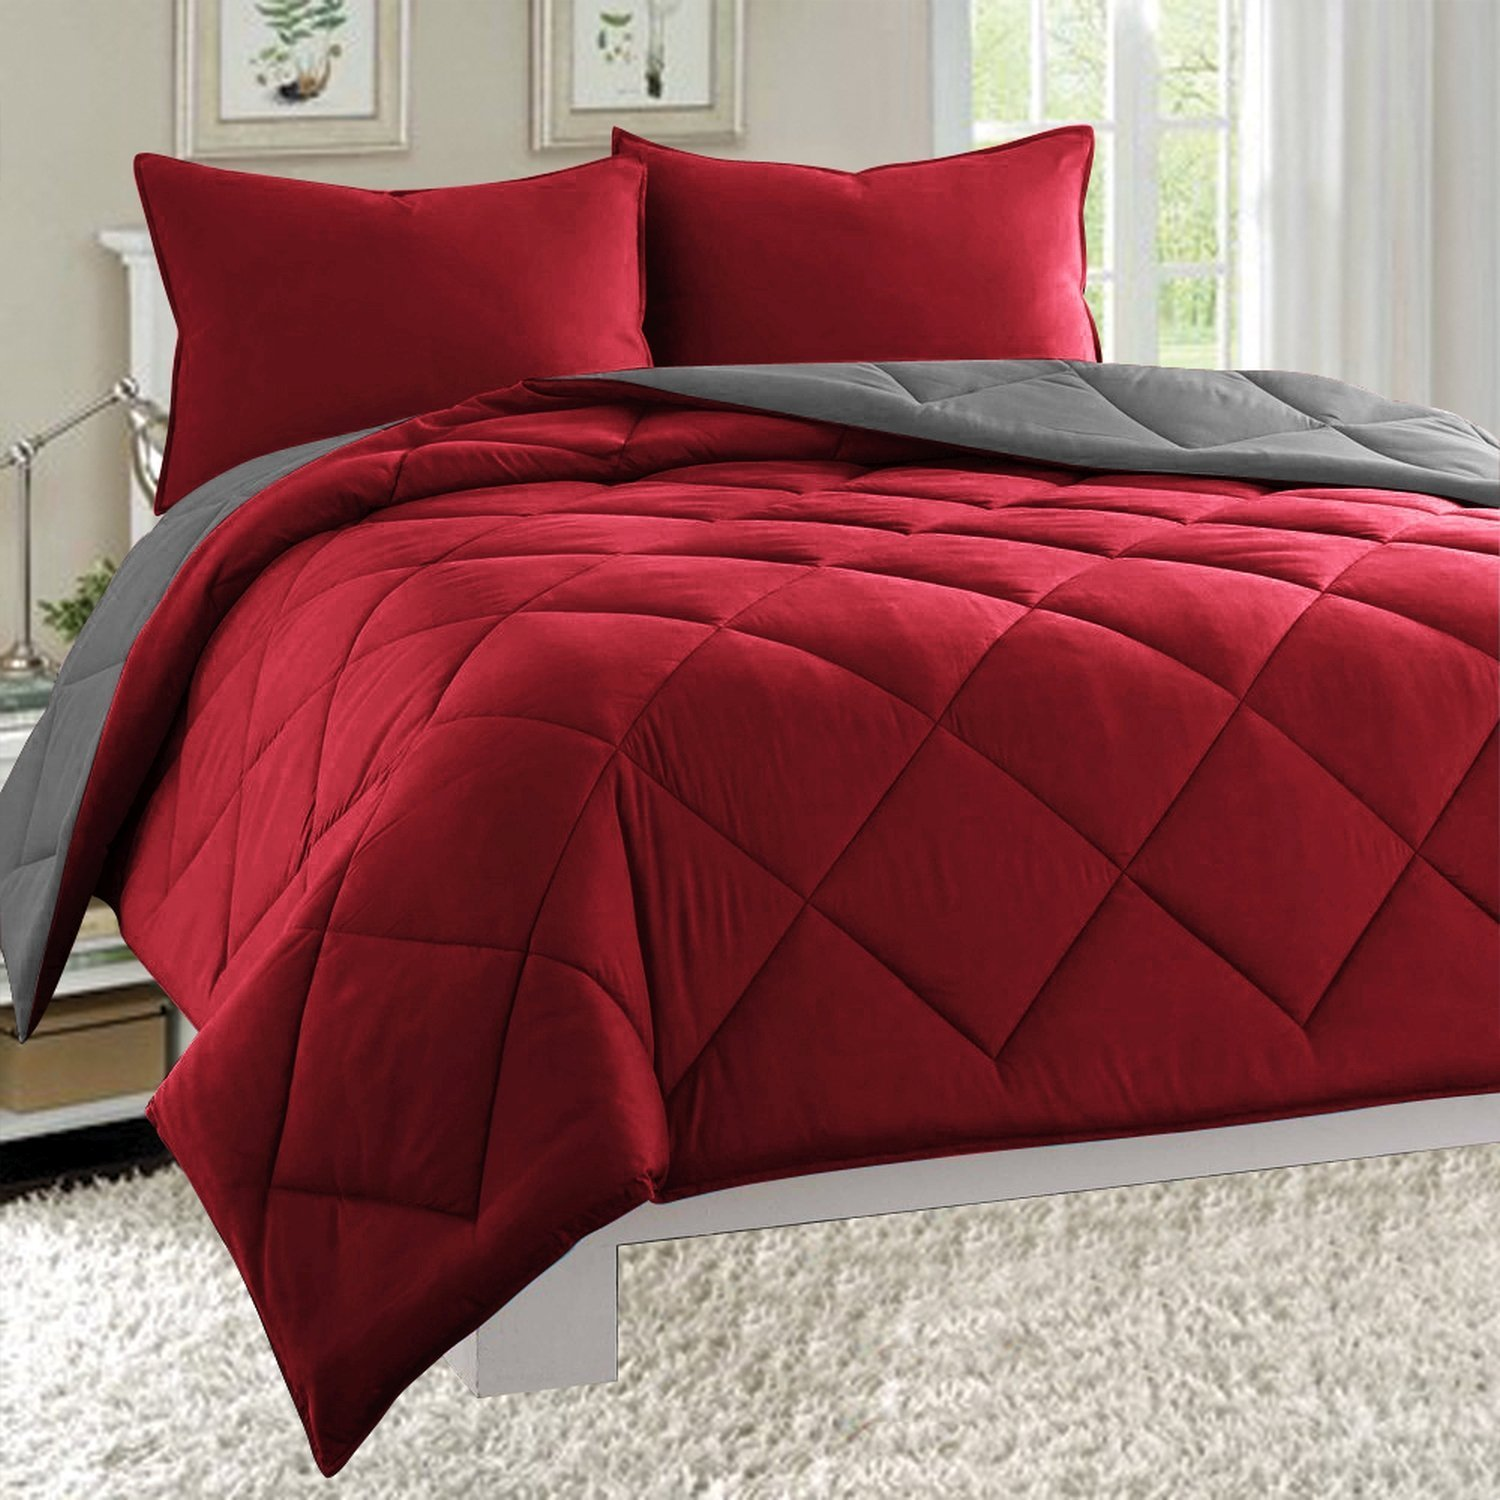 Reversible 2 Piece Comforter Set, Twin/Twin XL, Burgundy/Grey